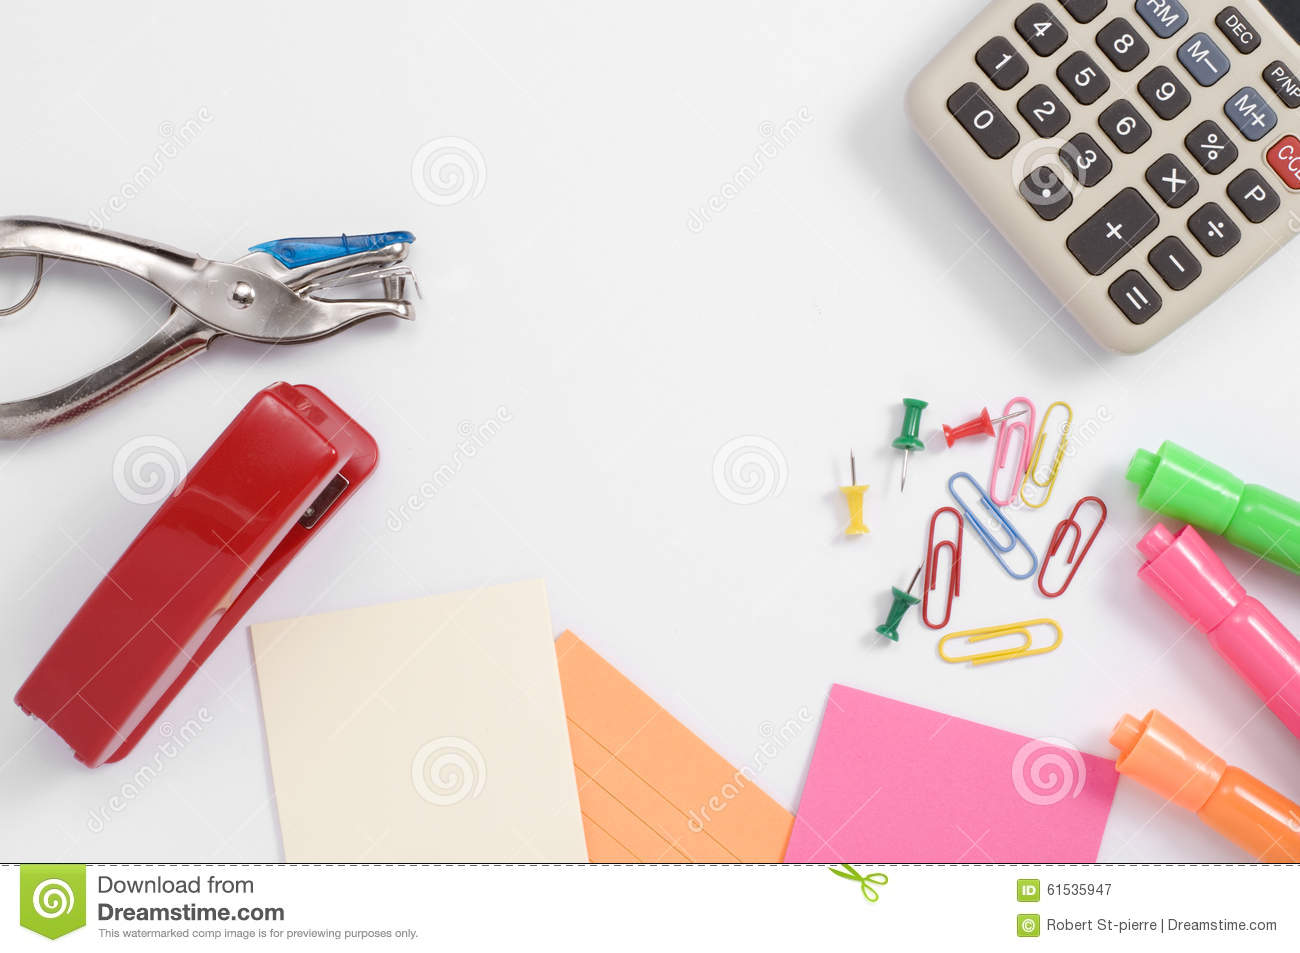 Colorful Office Supplies And Calculator Stock Photo